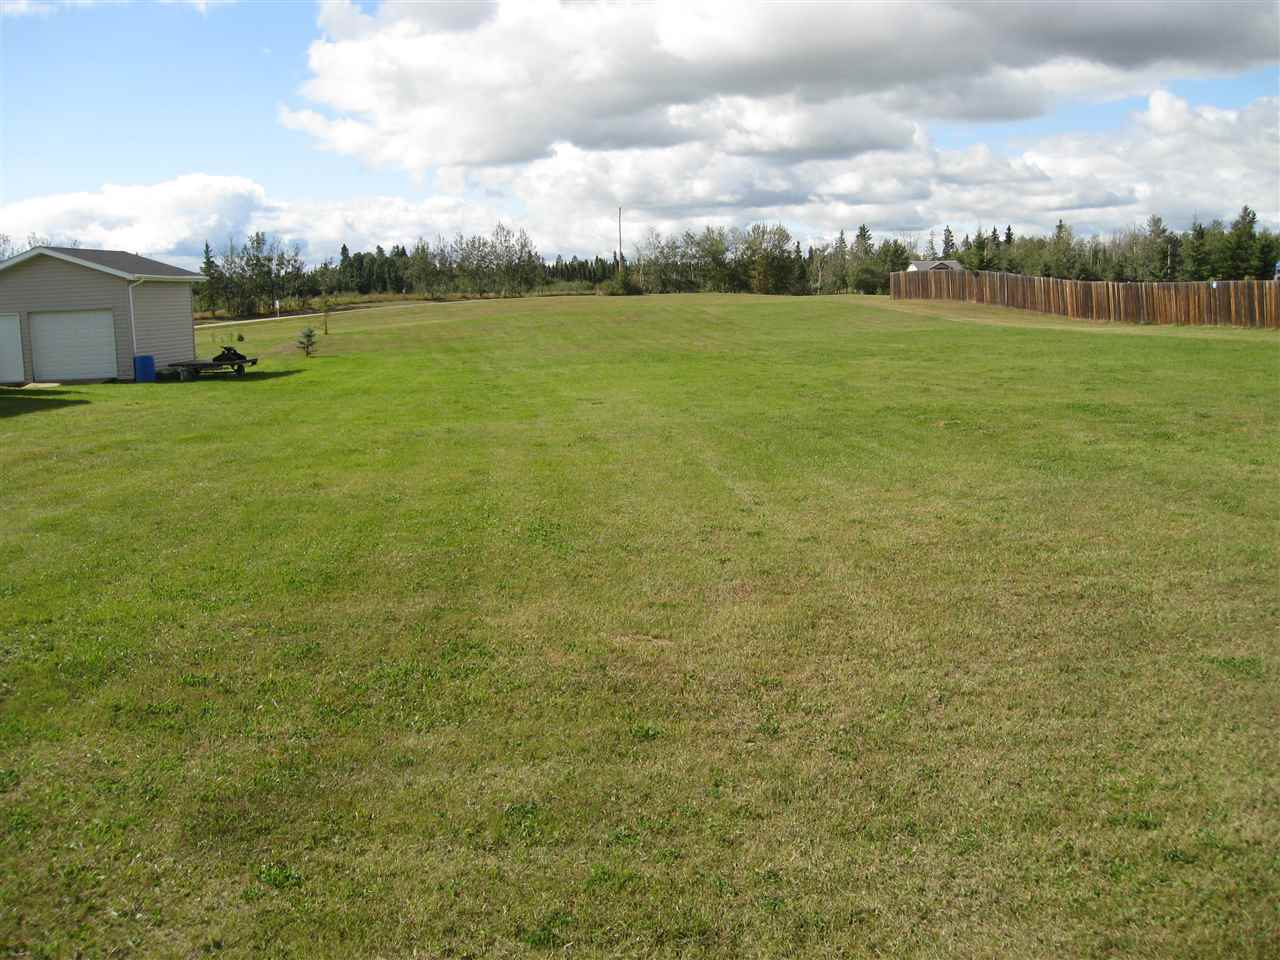 This flat and wide open .6 Acre Lot is located across the road from the Lake Front properties at Sandy Lake. This Lot has a park Reserve in the back so there will not be any neighbours in the back!! Get ready to build your home or retirement Home on this extra Large Lot located only 1/2 hr. from Stony Plain and St. Albert.